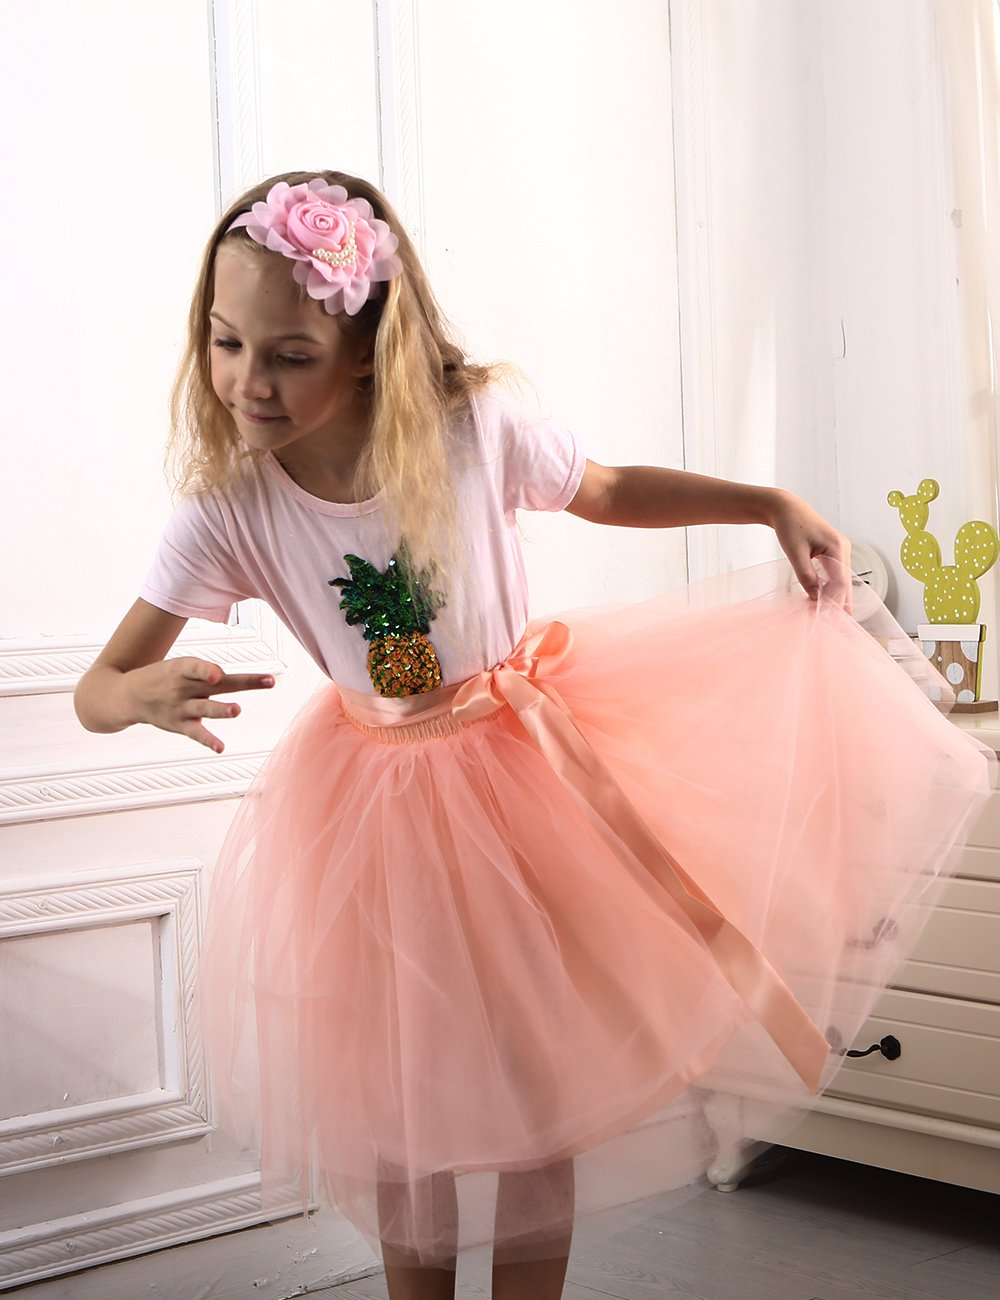 Zcaynger Girls Skirt Tutu Dancing Dress 5-Layer Fluffy with Ribbon by Zcaynger (Image #2)